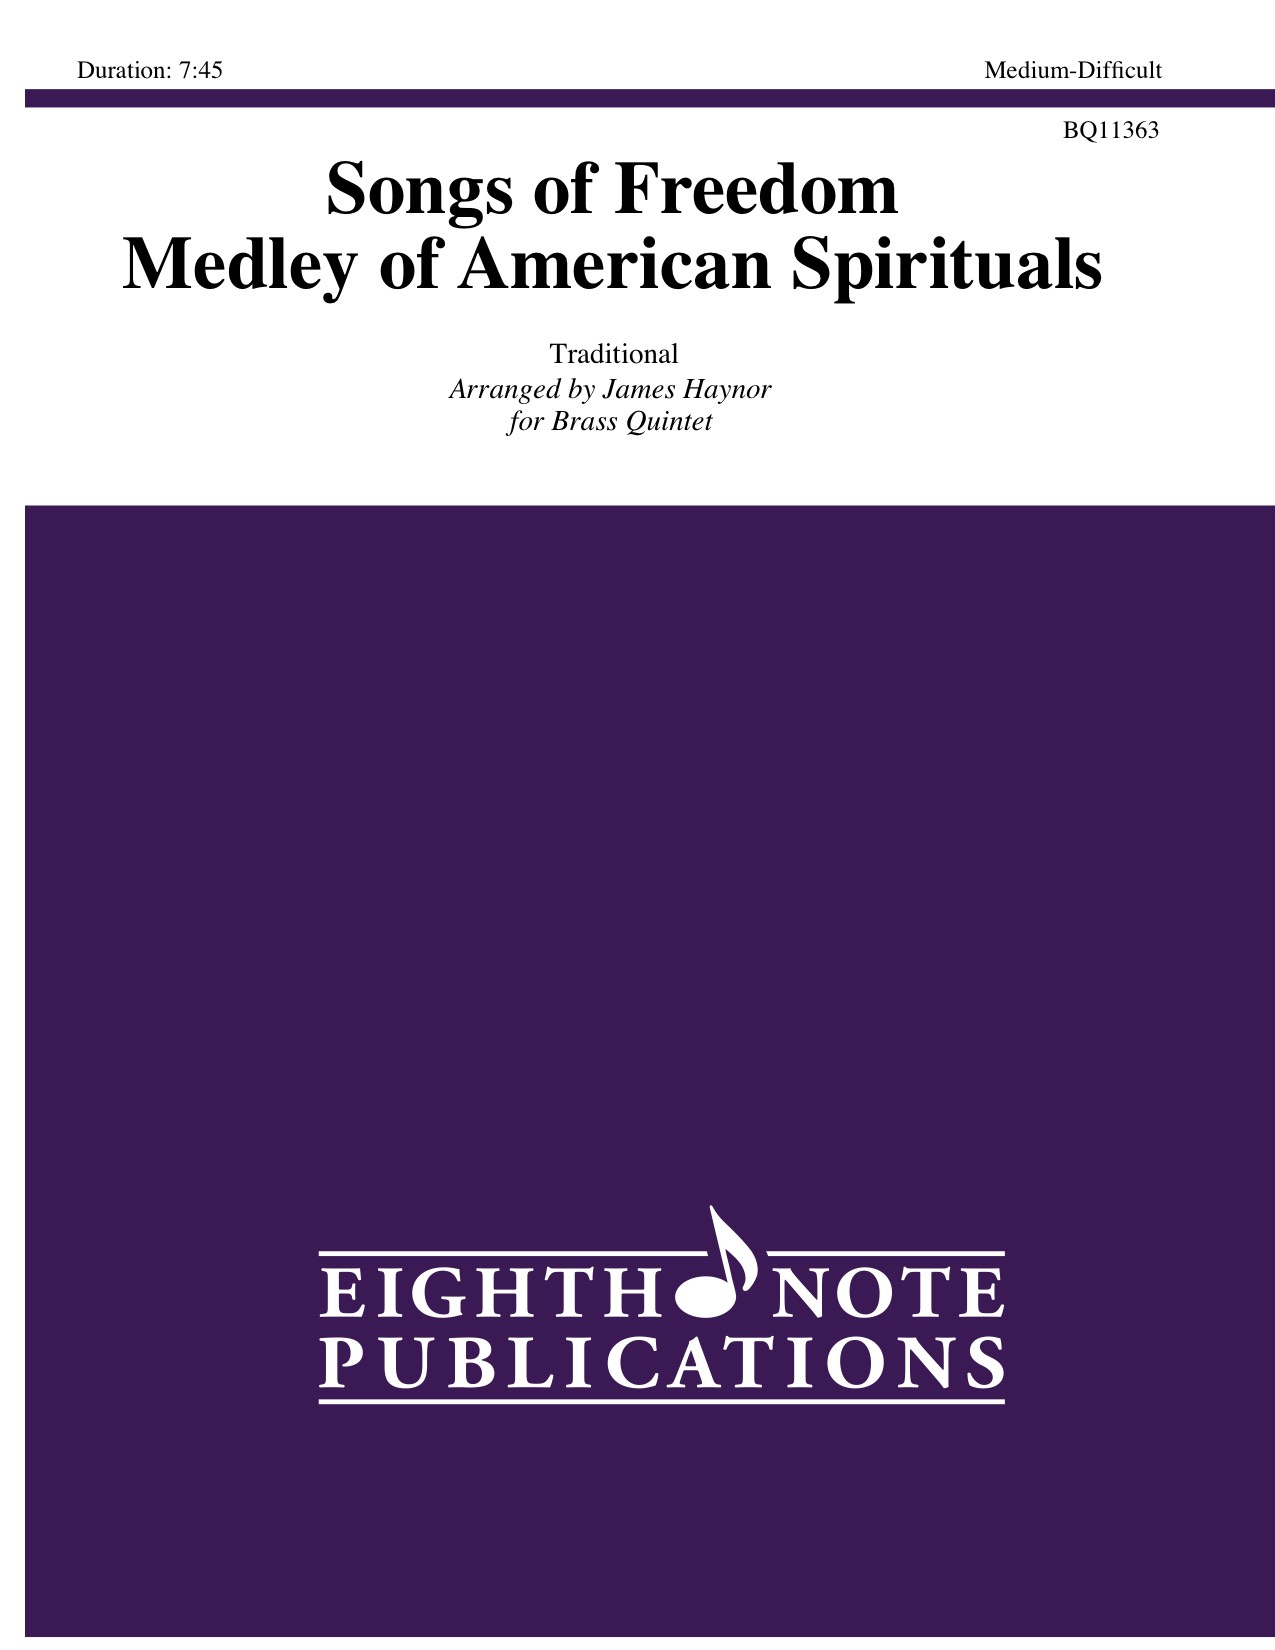 Songs of Freedom  - Medley of American Spirituals -  Traditional